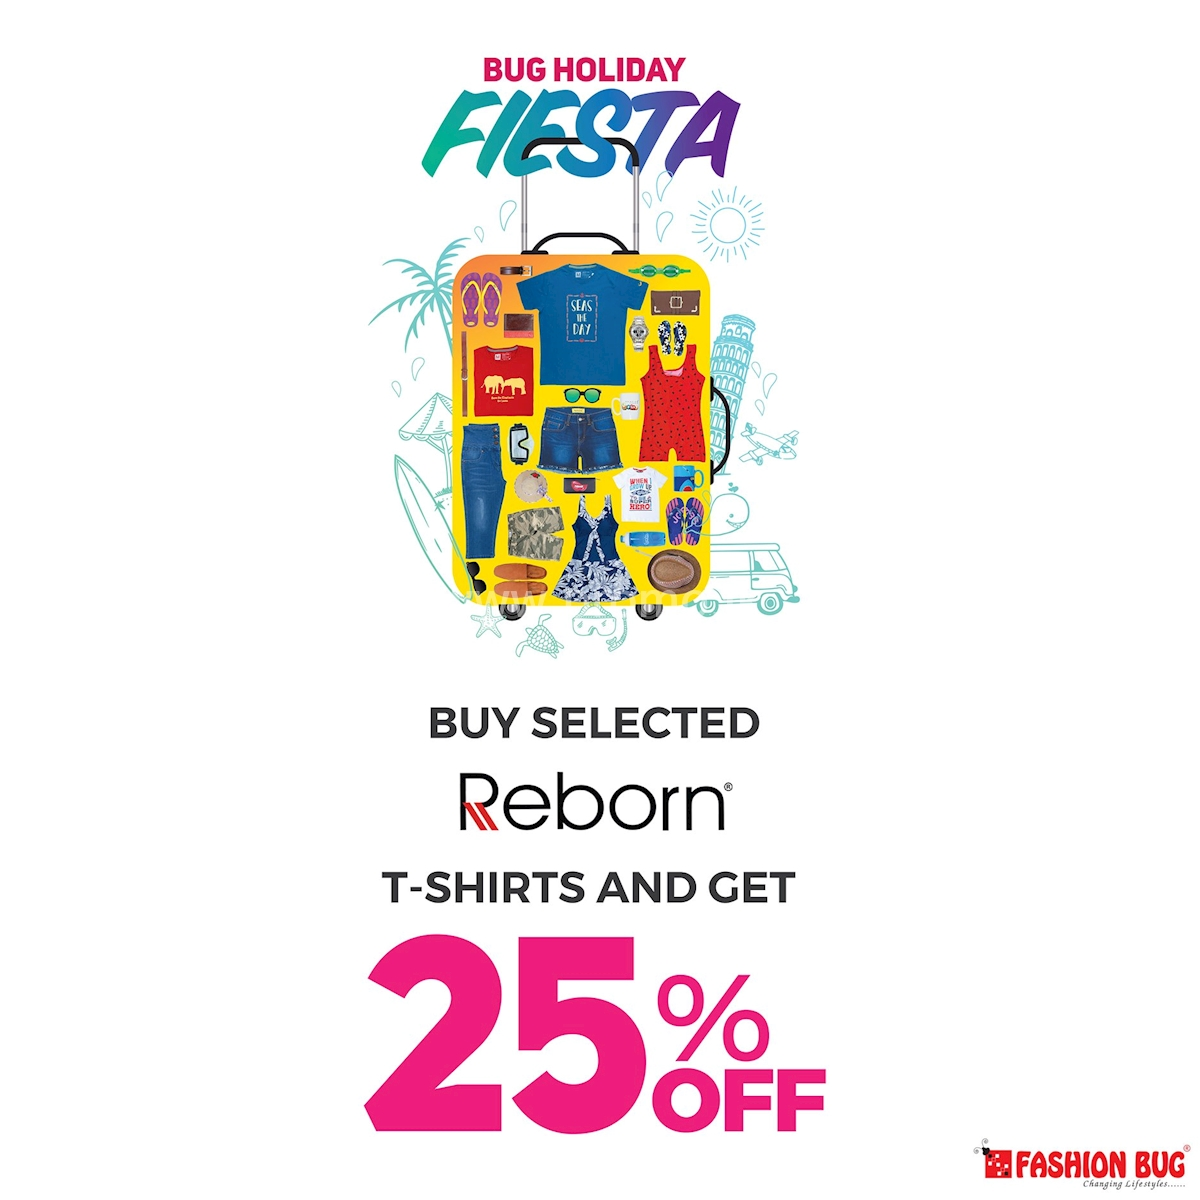 Buy selected Reborn T-Shirts and get 25% Off at Fashion Bug